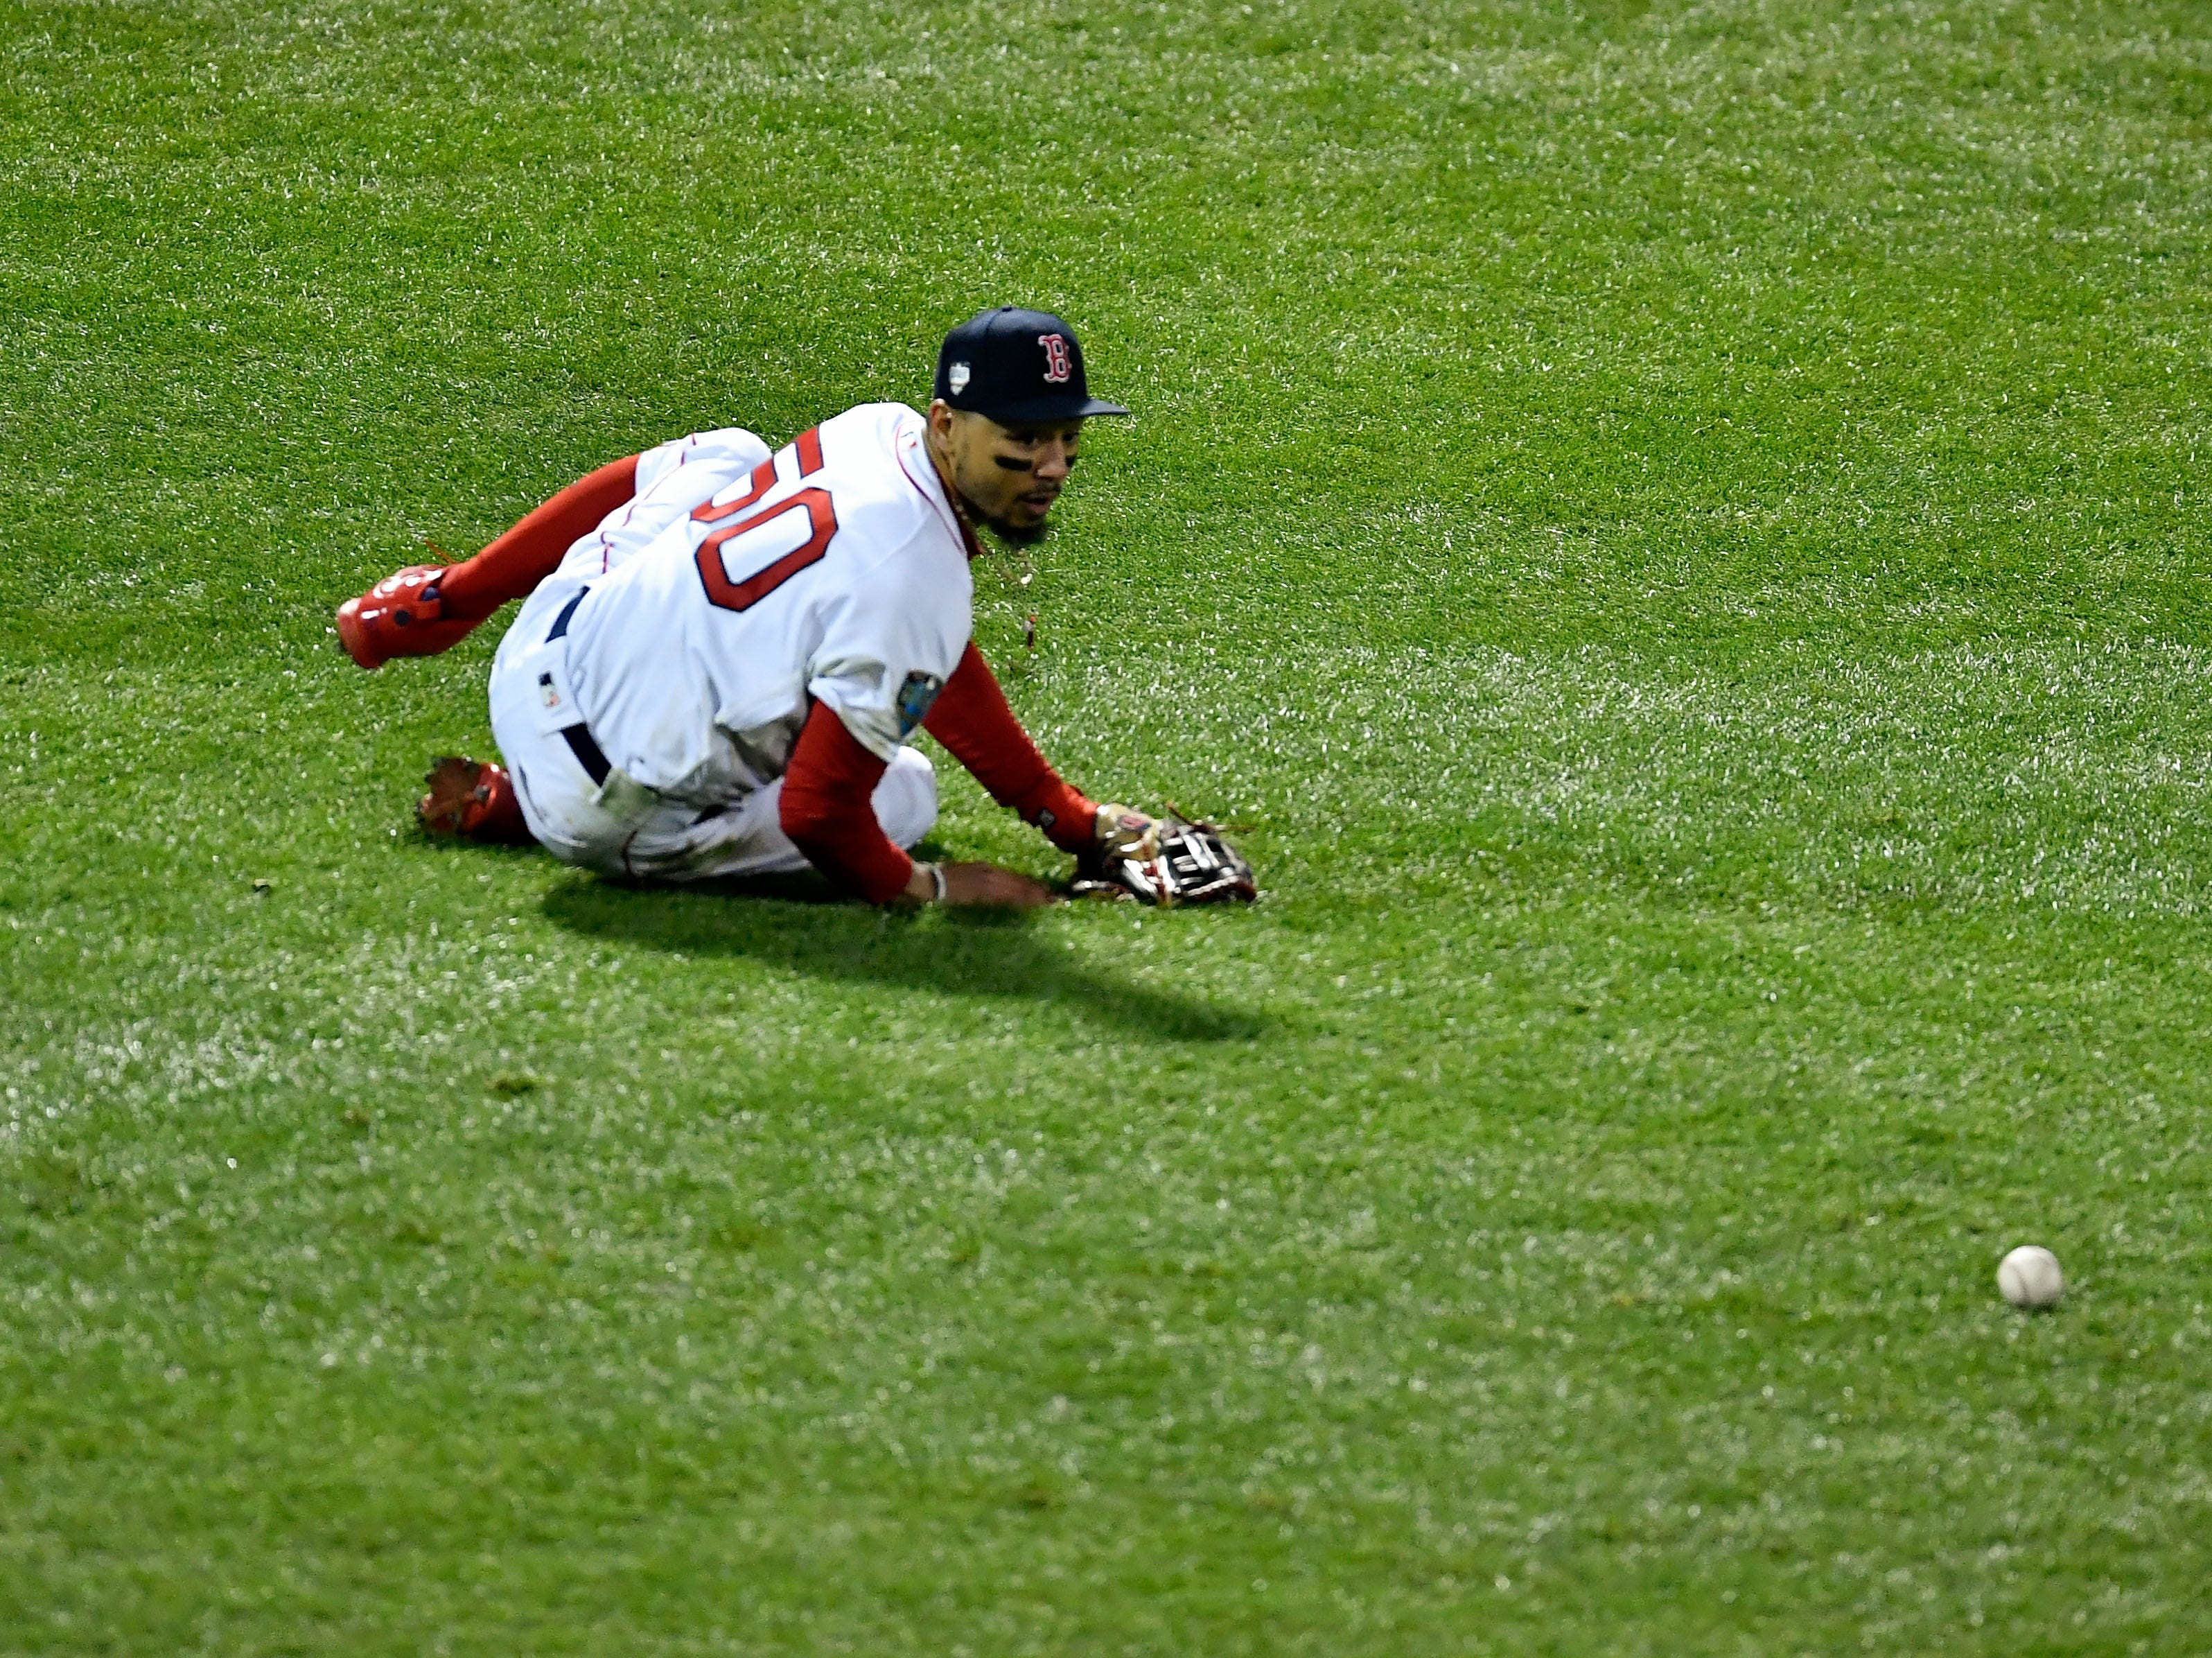 Game 2 at Fenway Park: Red Sox right fielder Mookie Betts reacts after David Freese hit a single in the fourth.